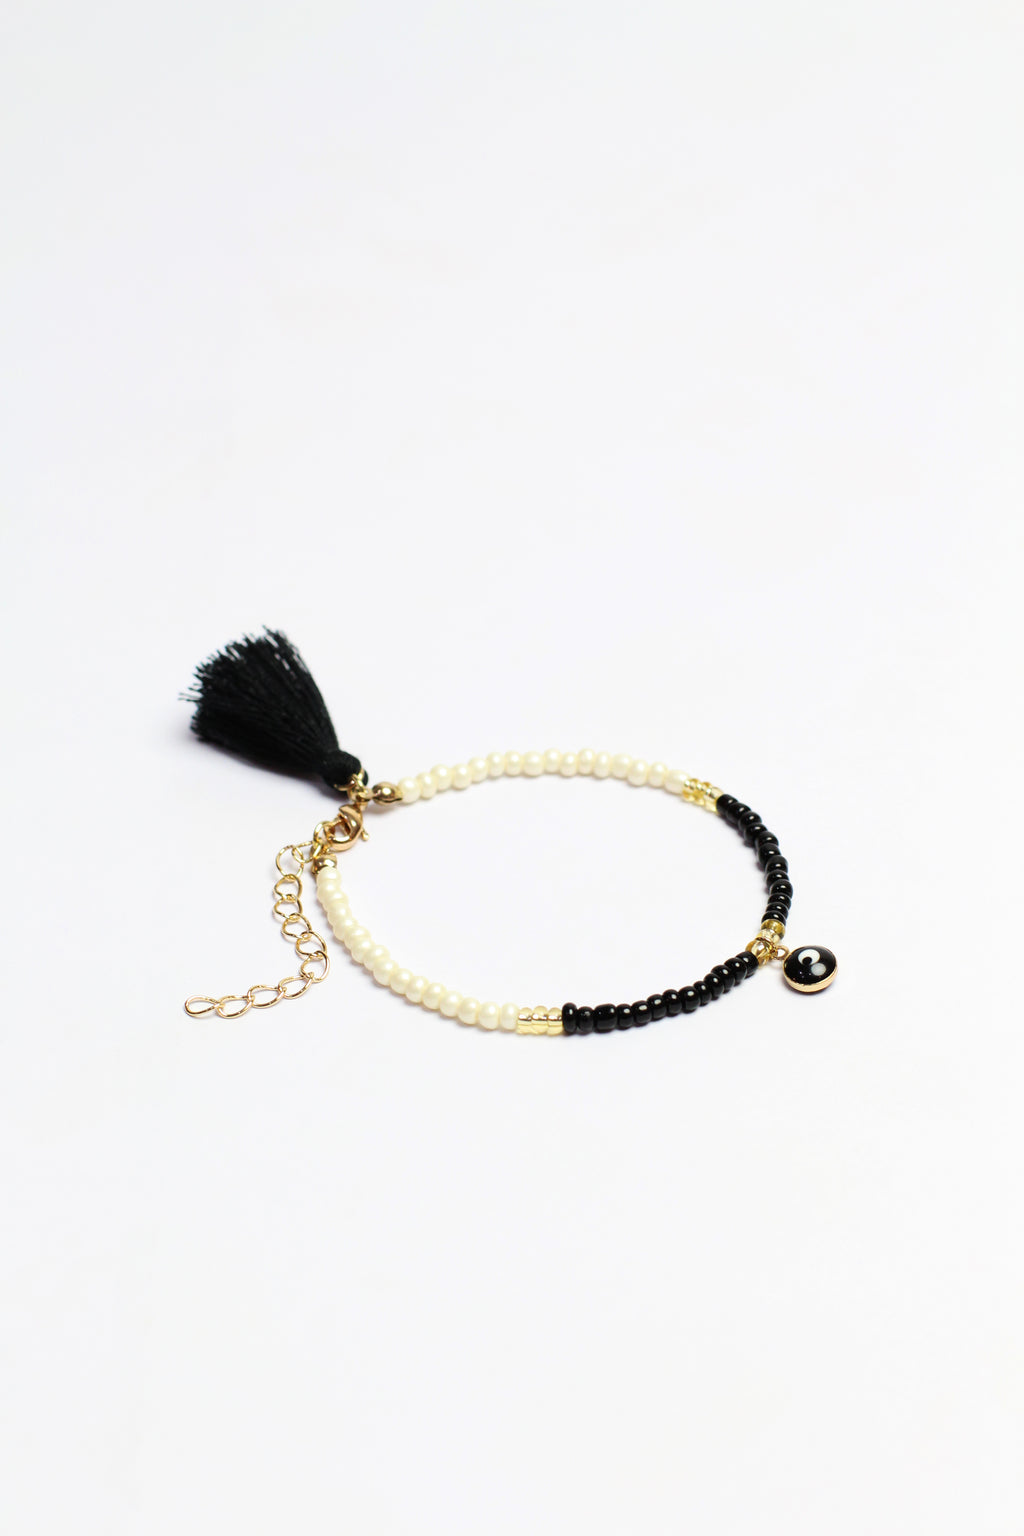 White/black beads bracelet w/ black eye pendant & black tassel